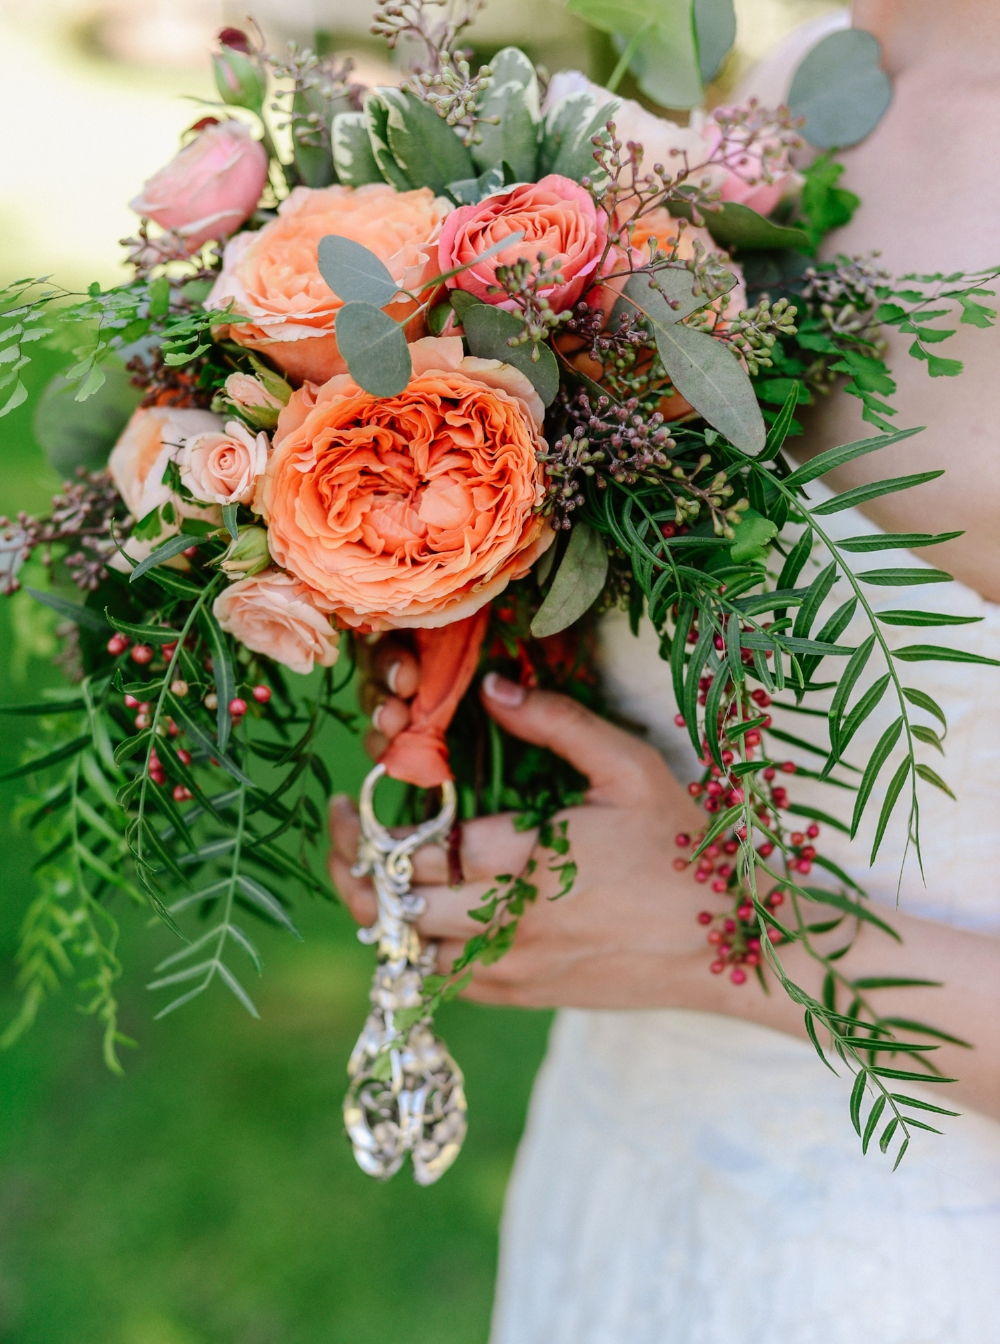 Peach bouquet with family antique silver charm - Jerome Tso Photography